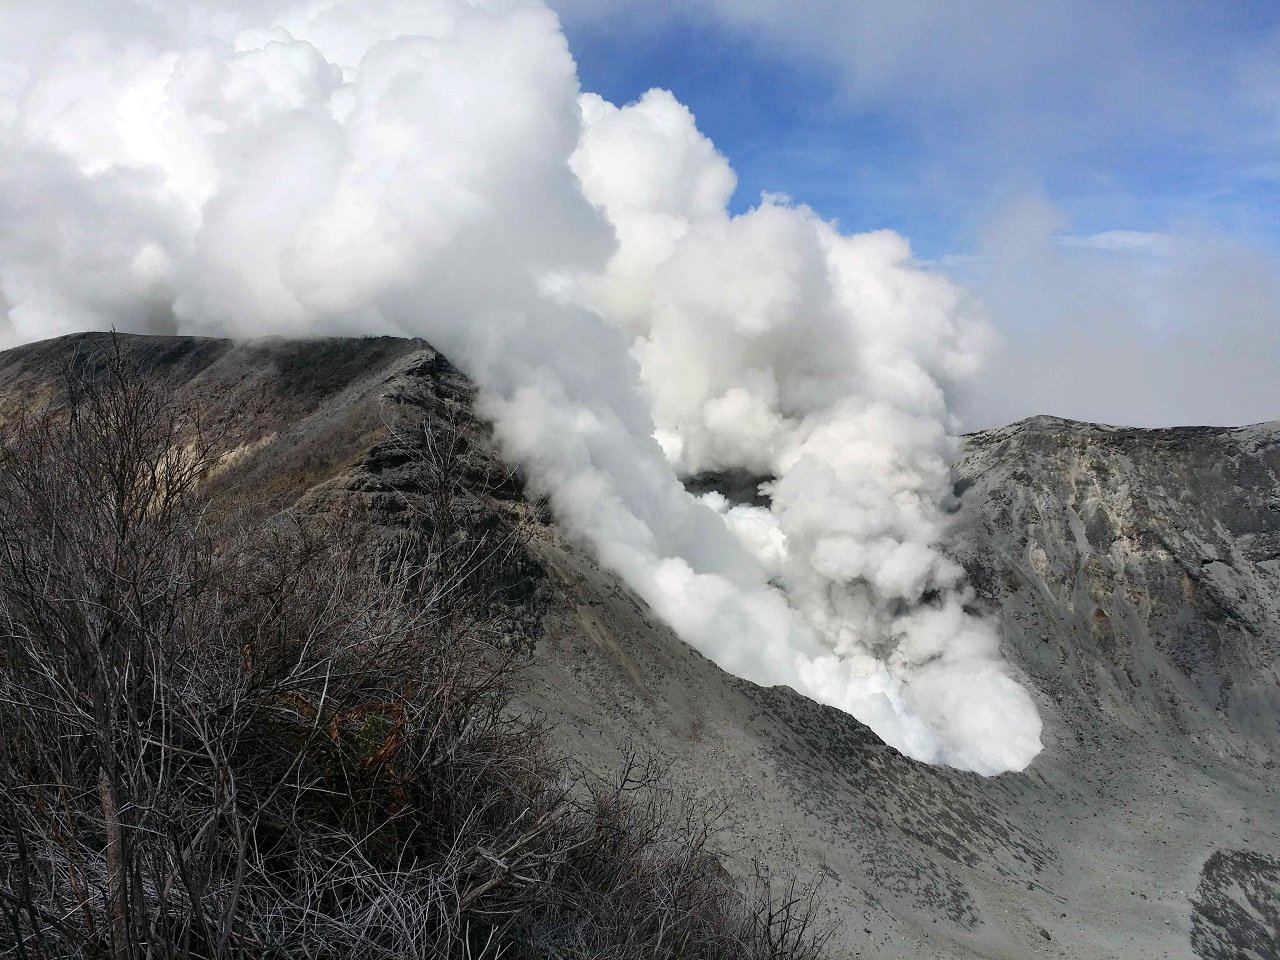 TURRIALBA VOLCANO EXPELS GAS AND ASHES